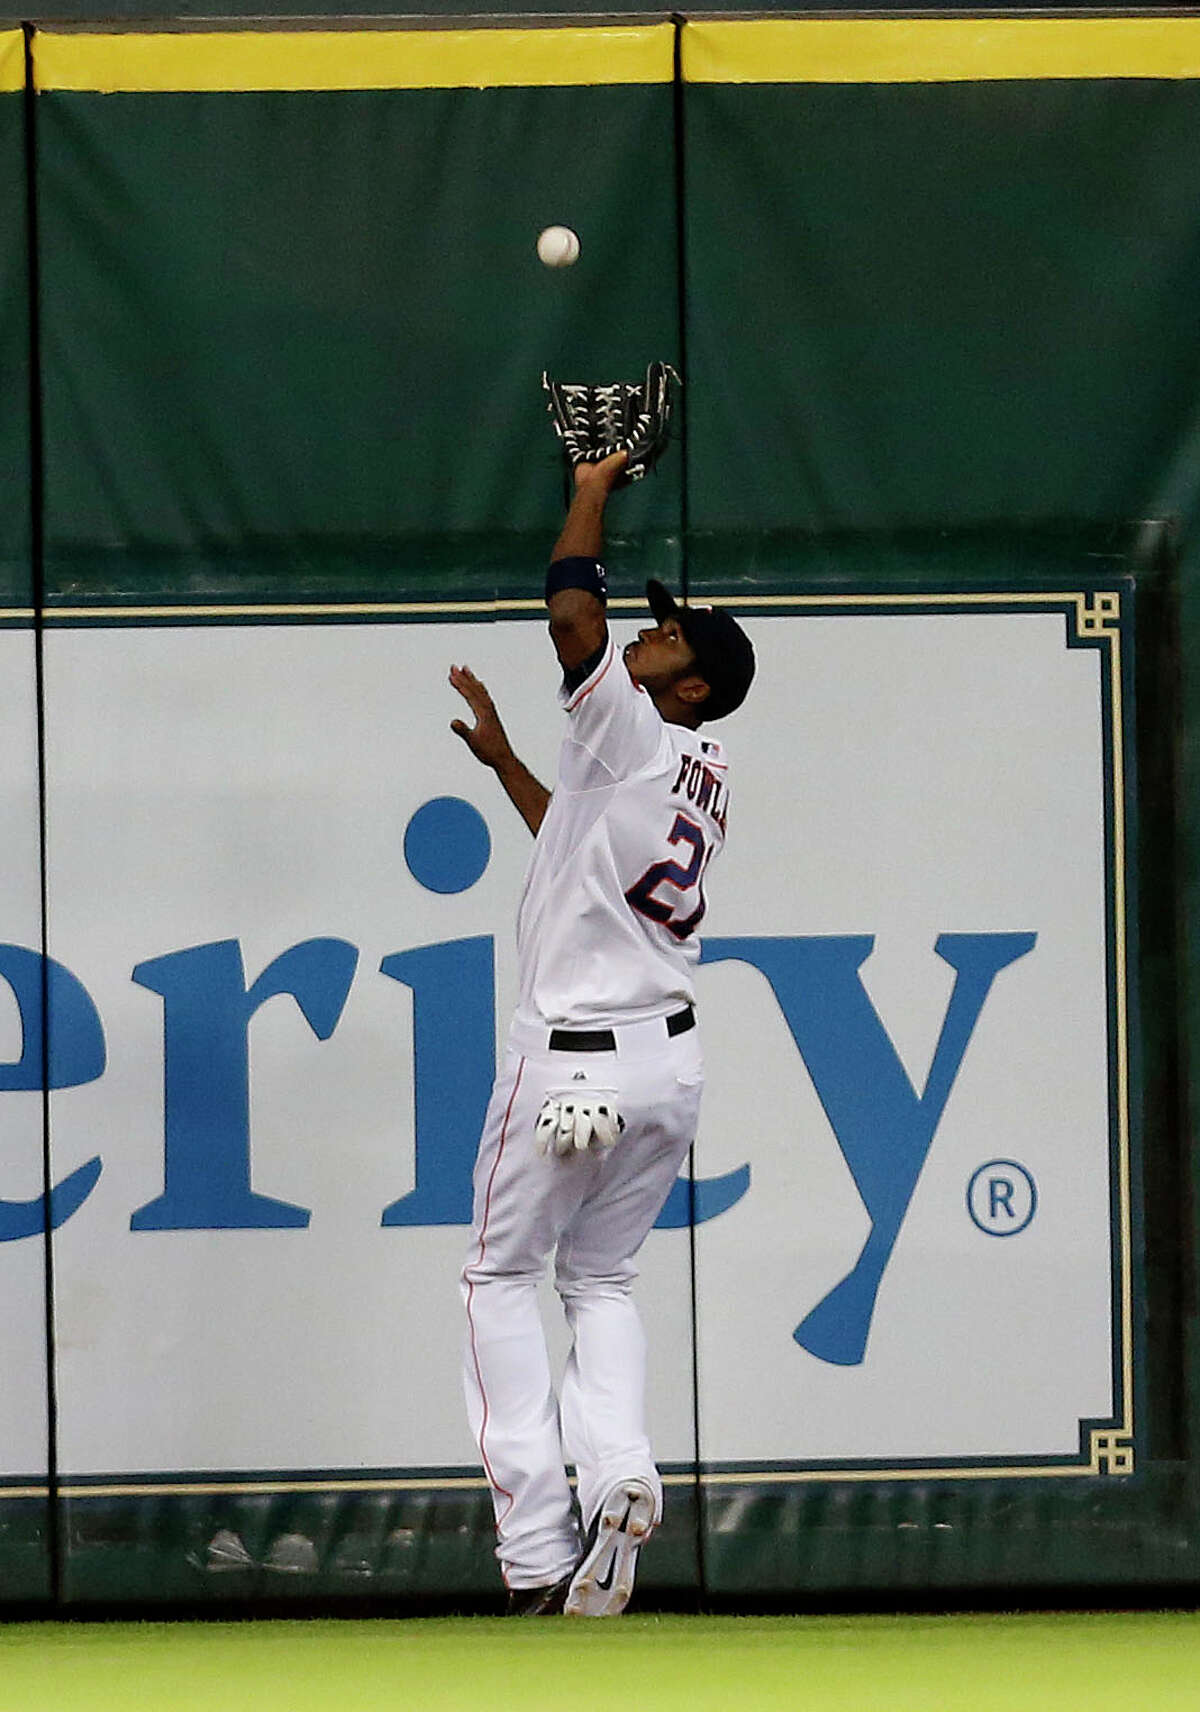 Dexter Fowler is the type of established player a contender may covet.